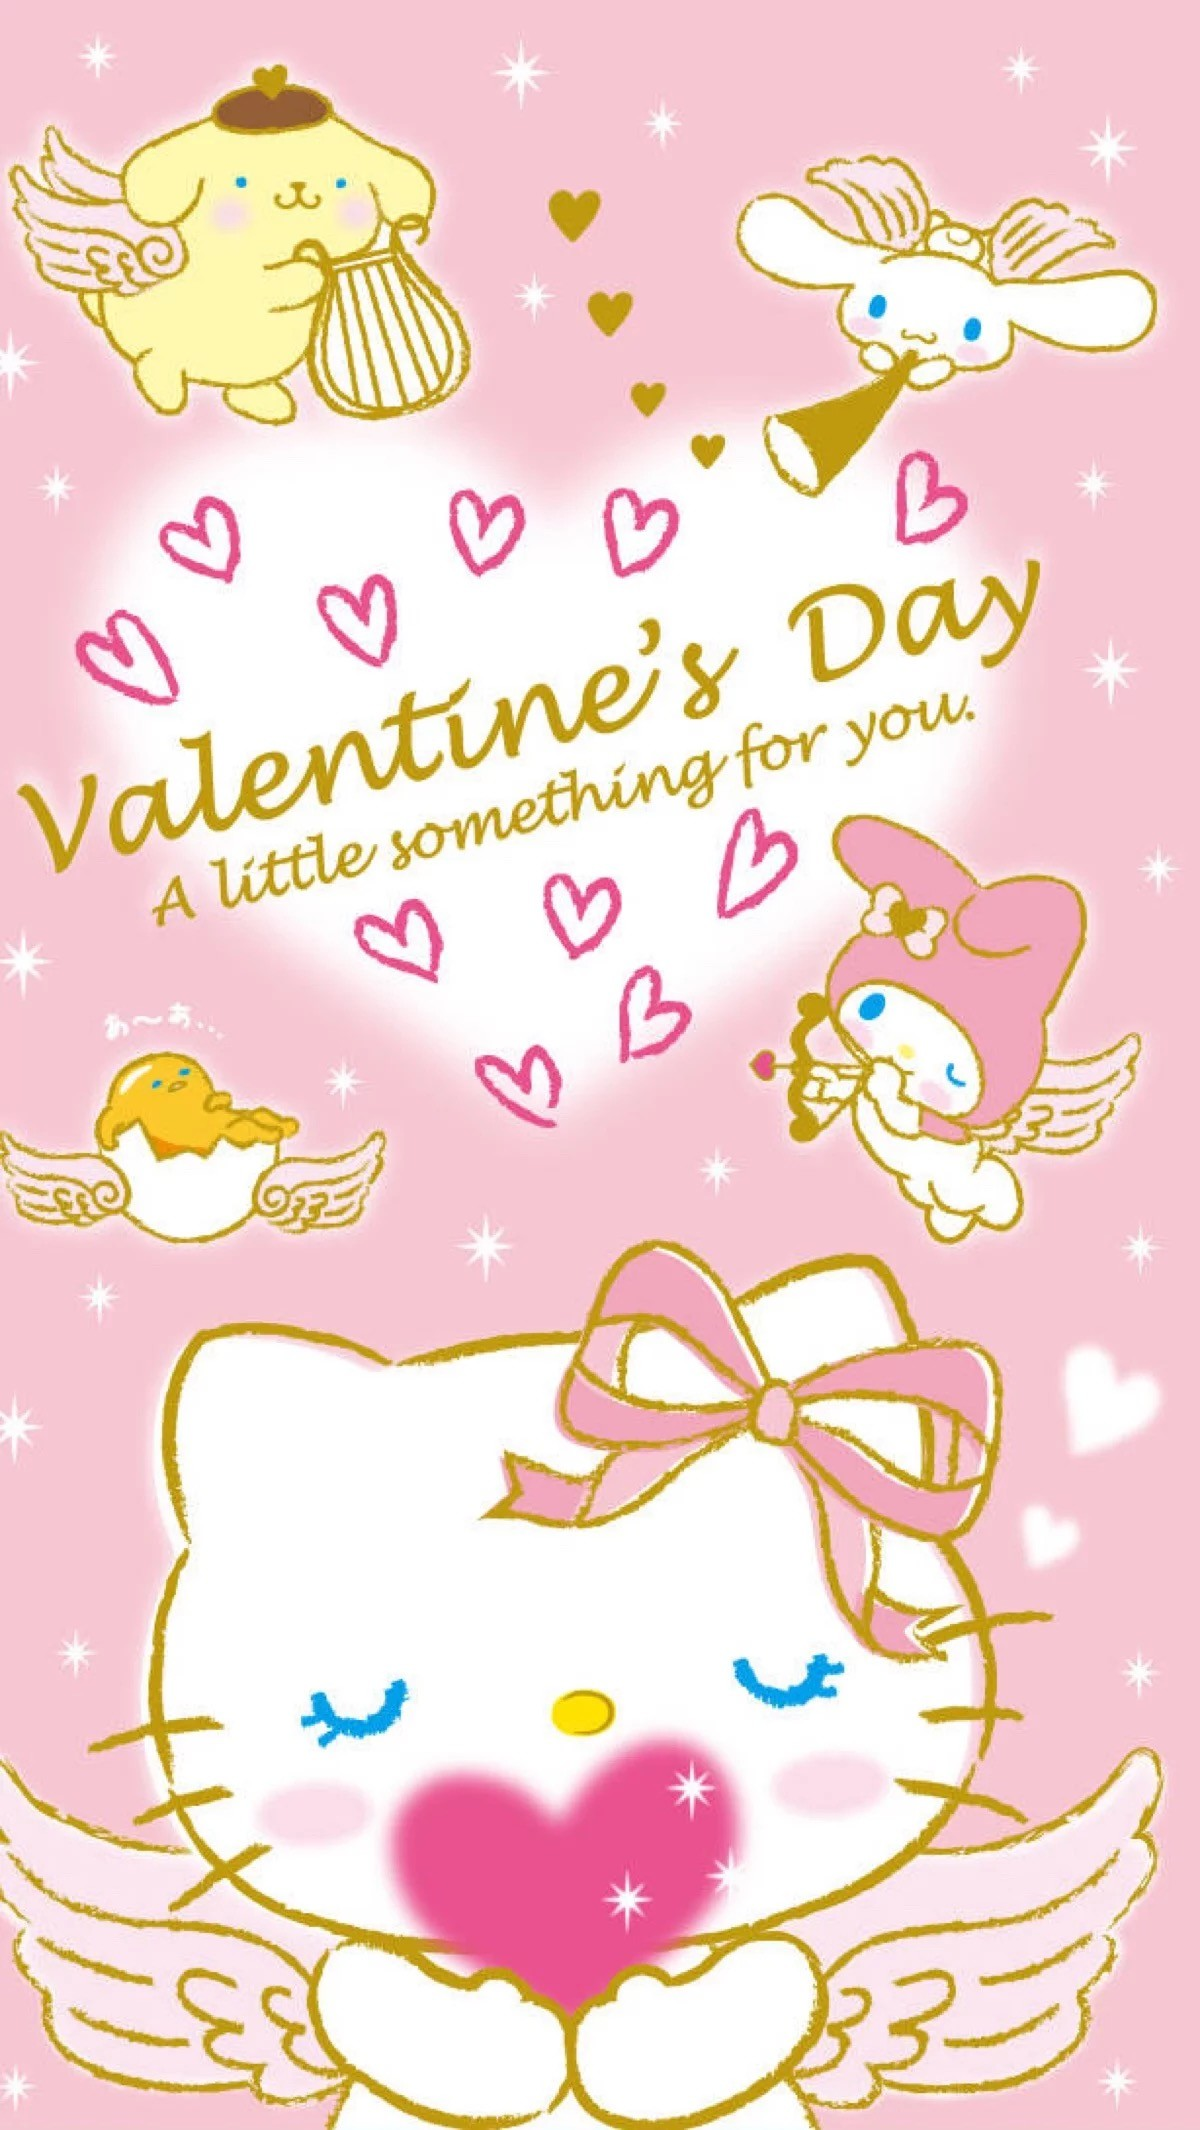 Simple Wallpaper Hello Kitty Love - 262768  HD_274025.jpg